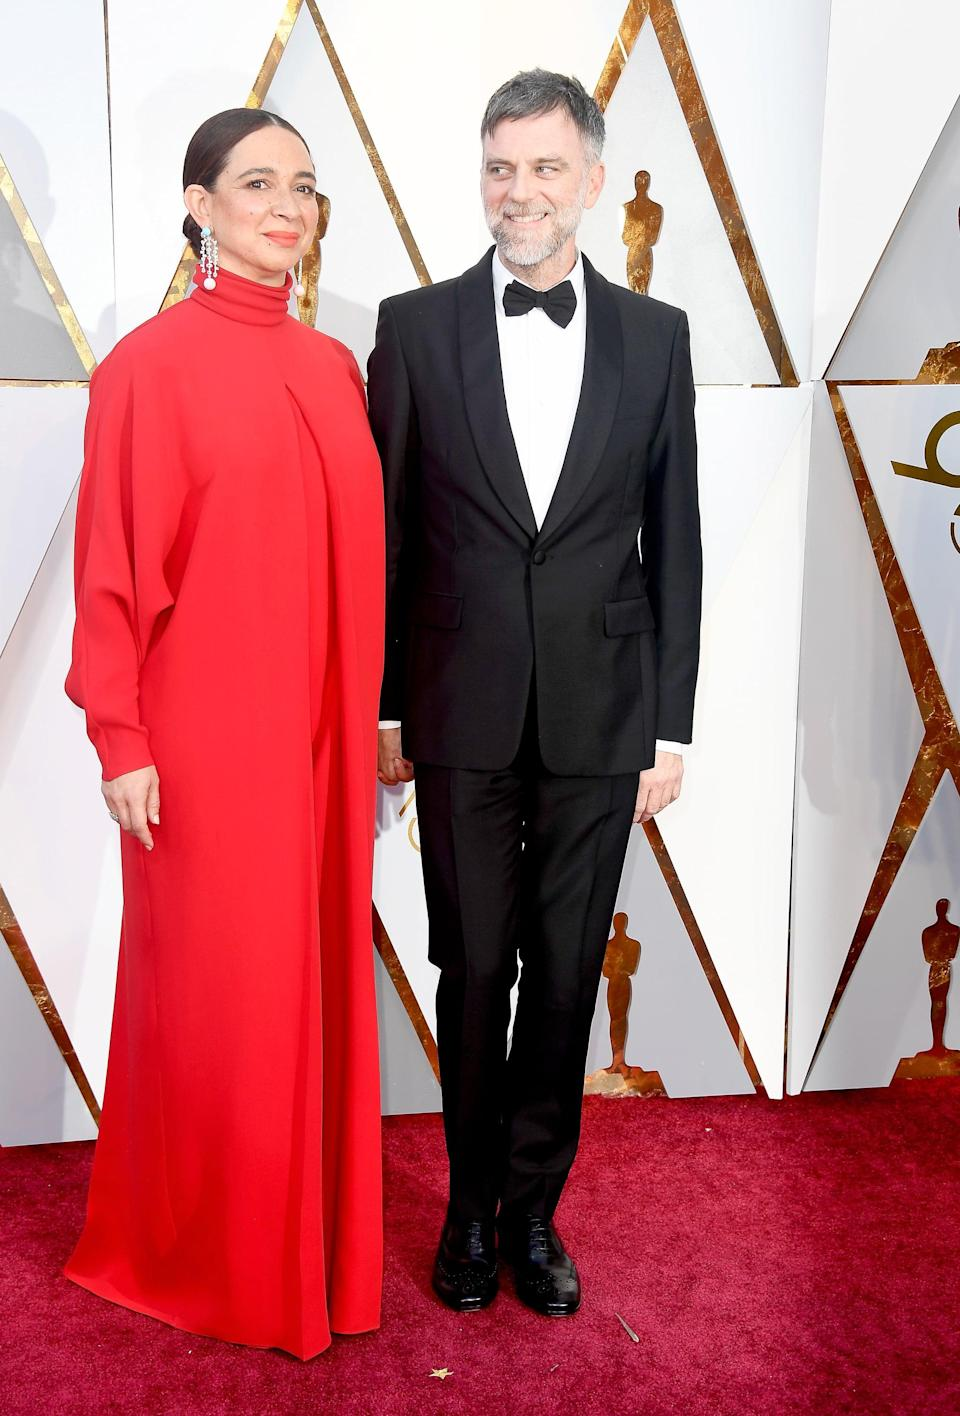 HOLLYWOOD, CA - MARCH 04:  Maya Rudolph (L) and Paul Thomas Anderson attend the 90th Annual Academy Awards at Hollywood & Highland Center on March 4, 2018 in Hollywood, California.  (Photo by Frazer Harrison/Getty Images)